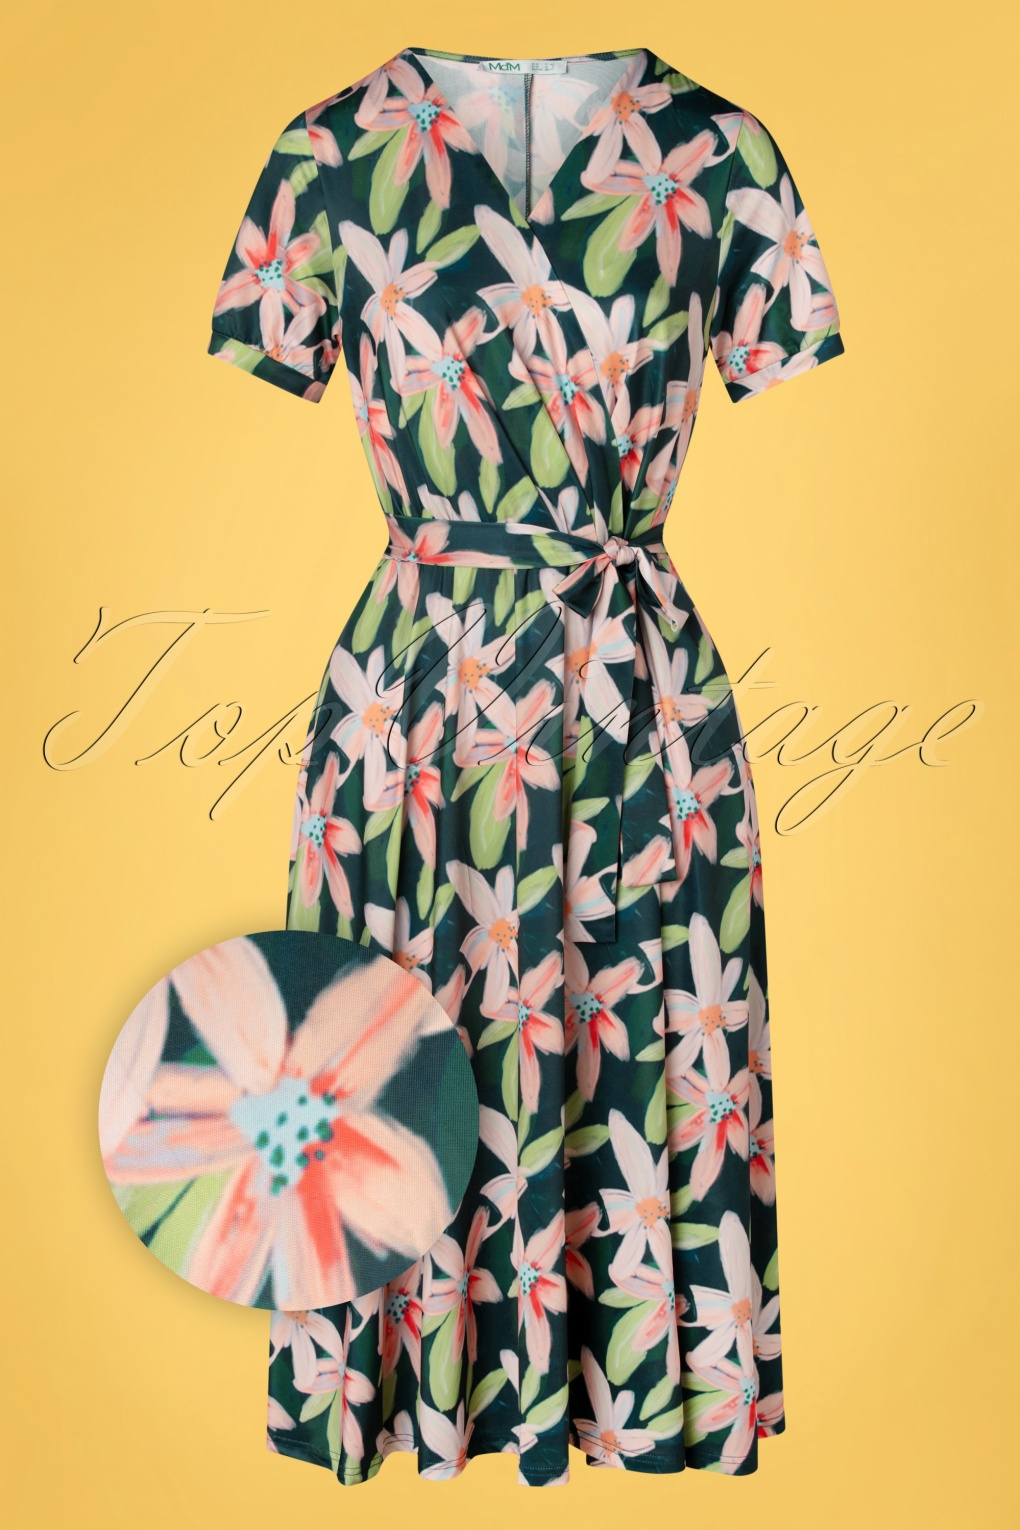 Retro Tiki Dress – Tropical, Hawaiian Dresses 50s Bibian Cross Over Swing Dress in Botanical £24.95 AT vintagedancer.com